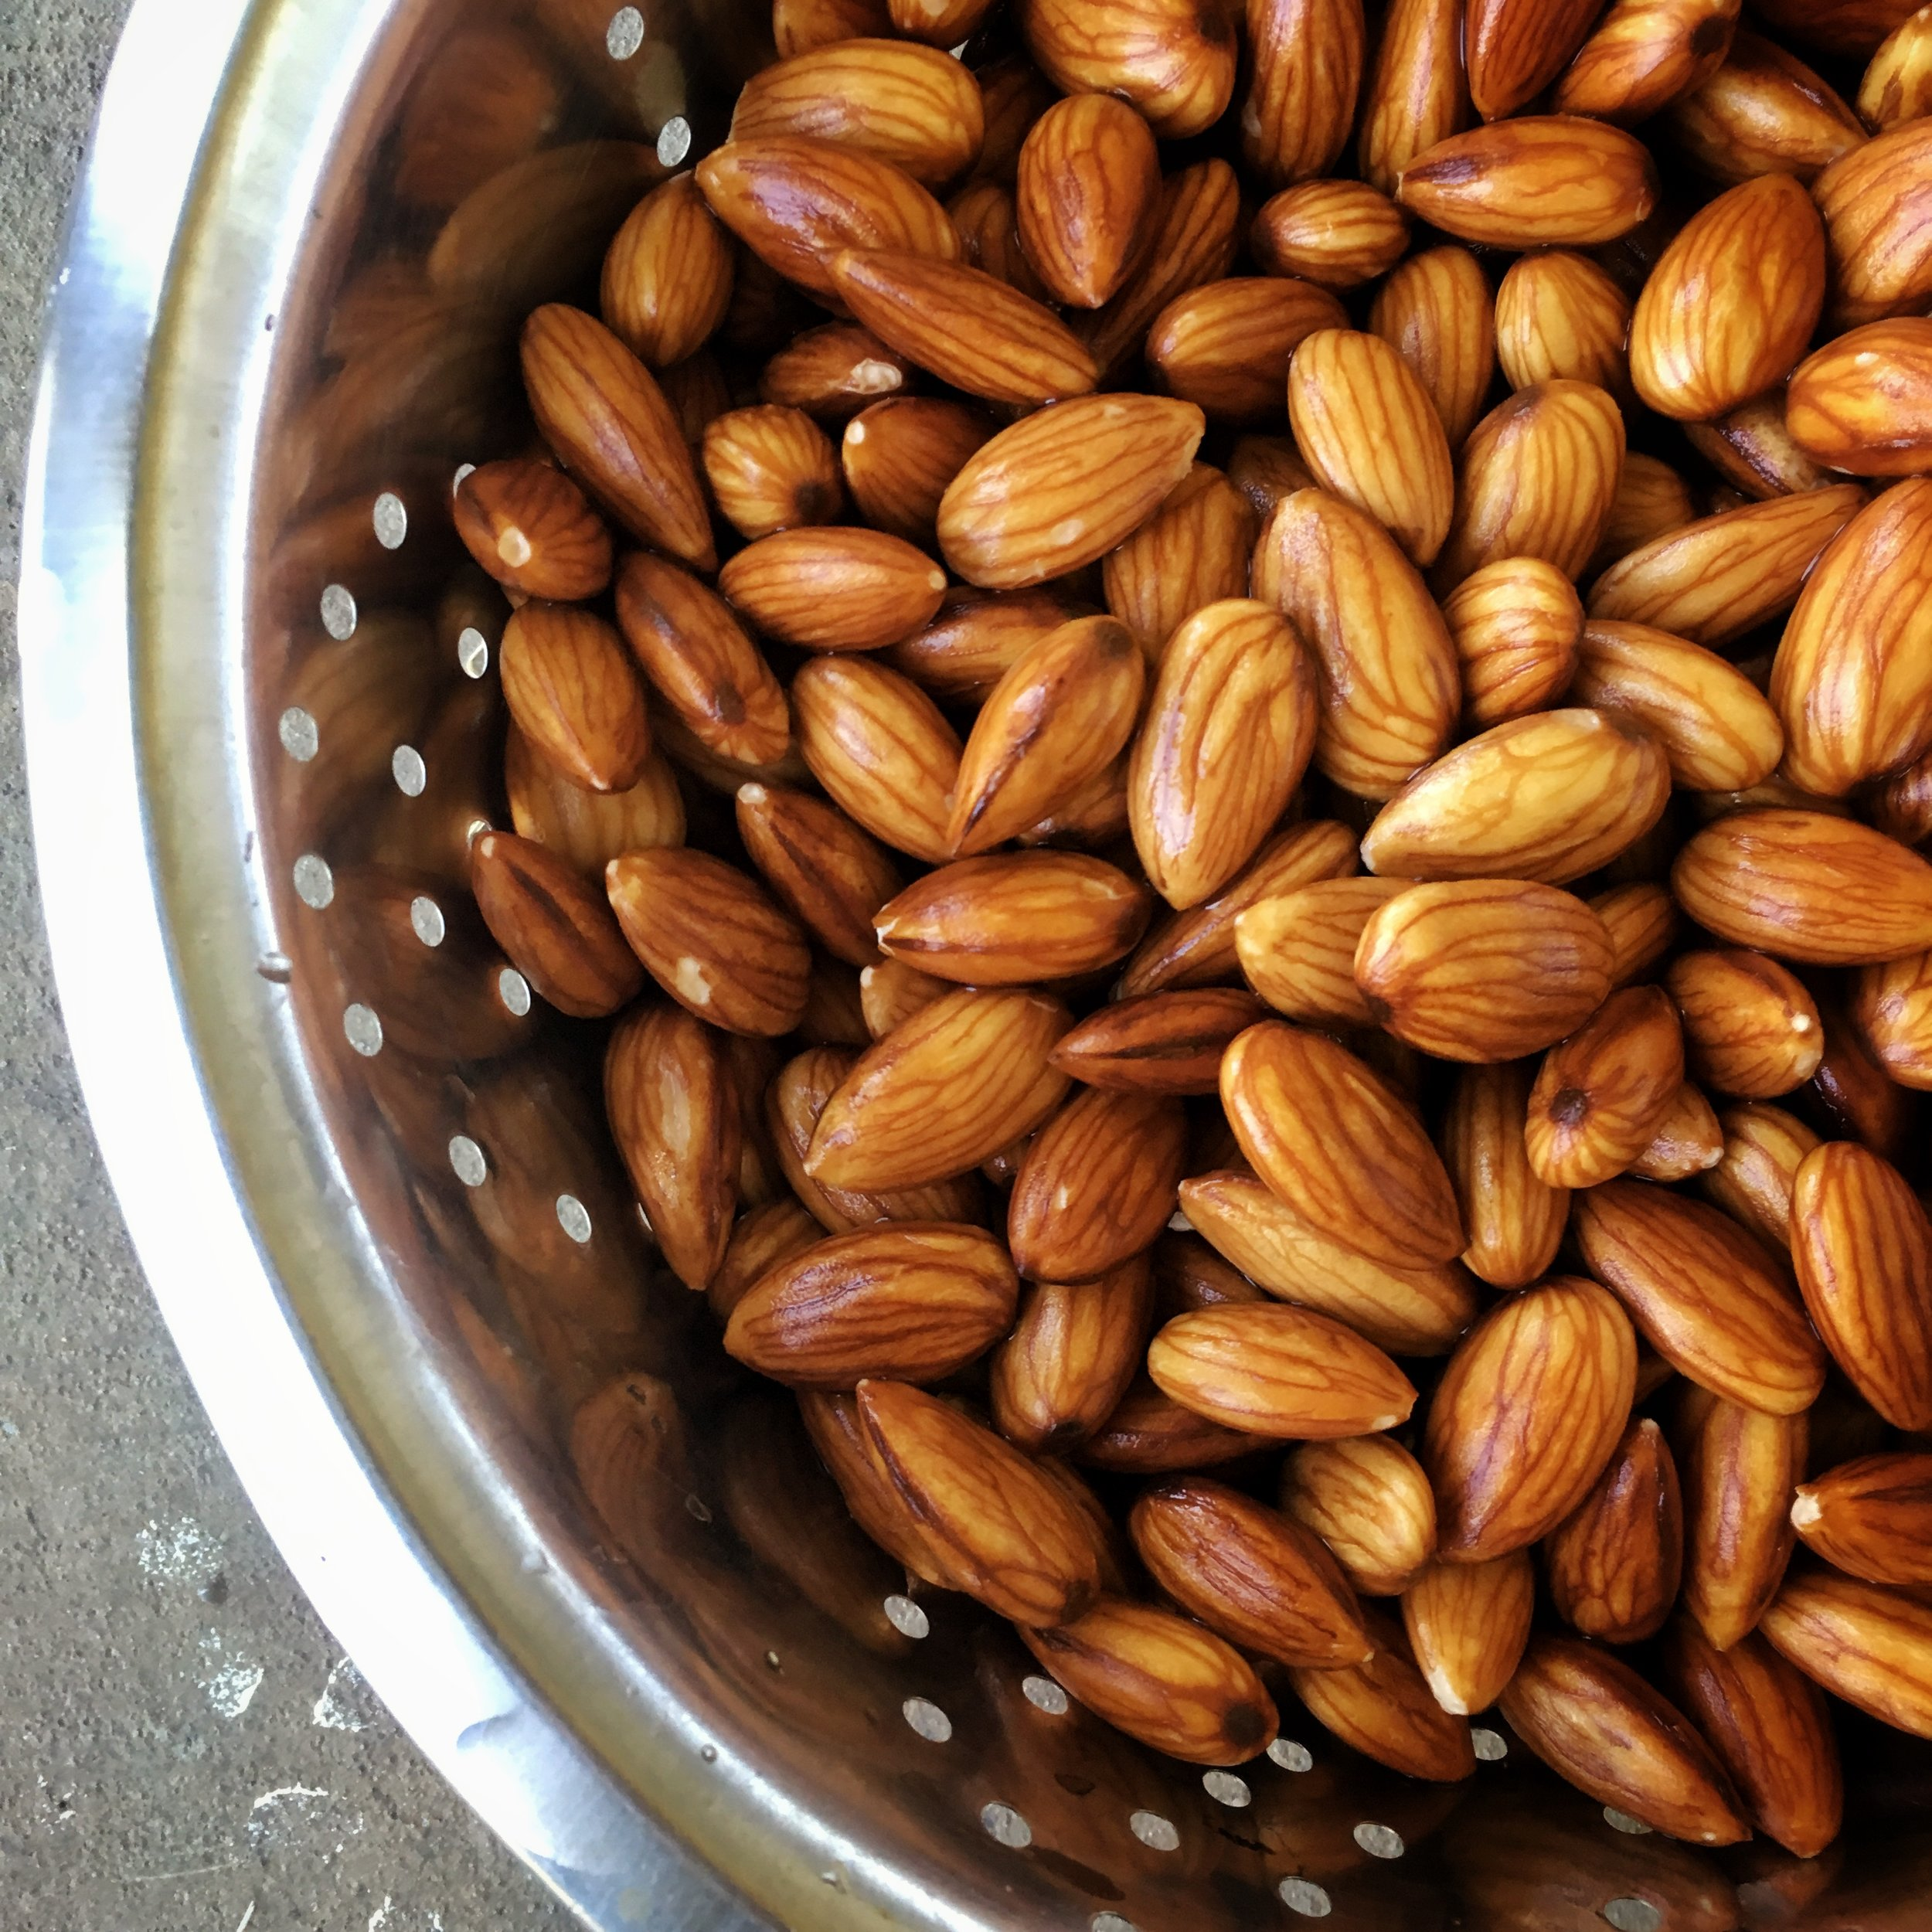 Soak almonds overnight -